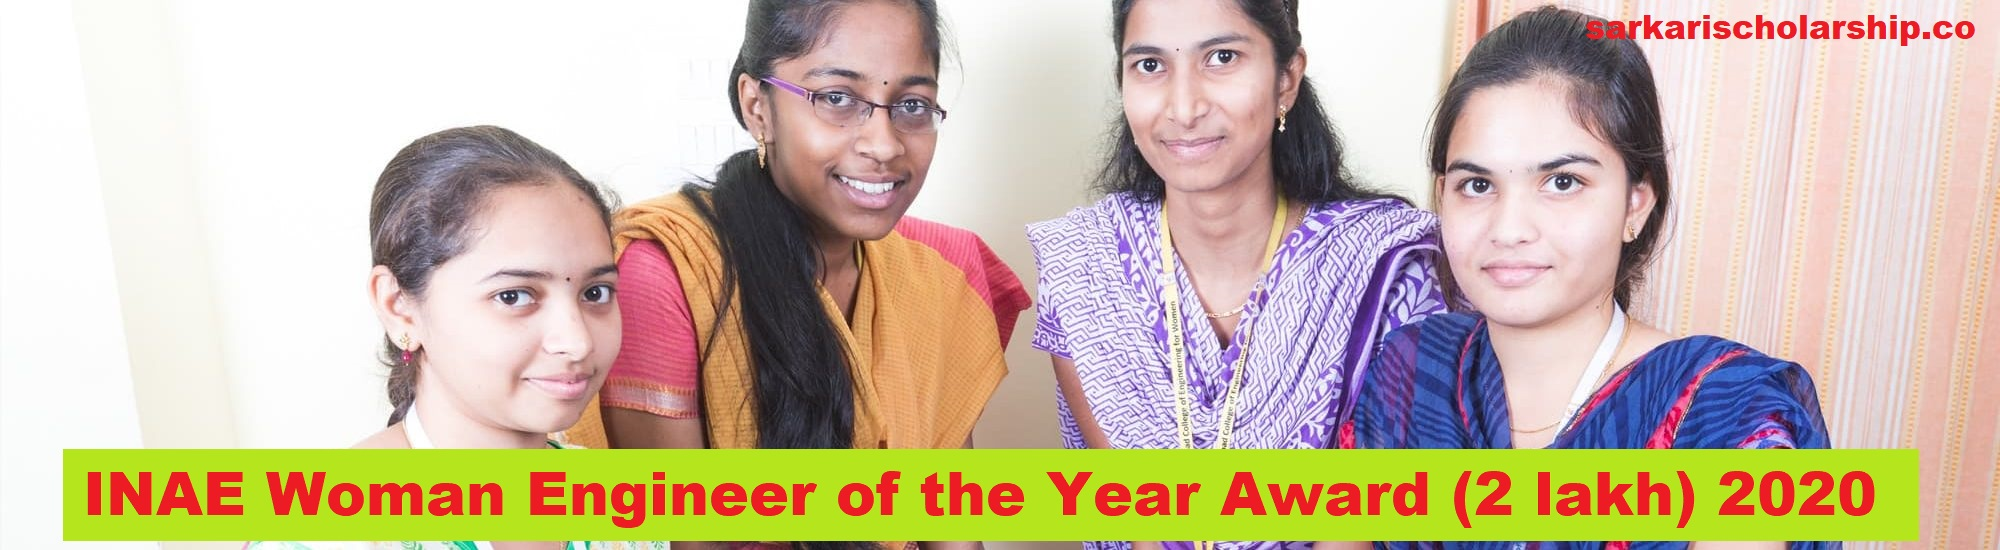 INAE Woman Engineer of the Year Award (2 lakh) 2020